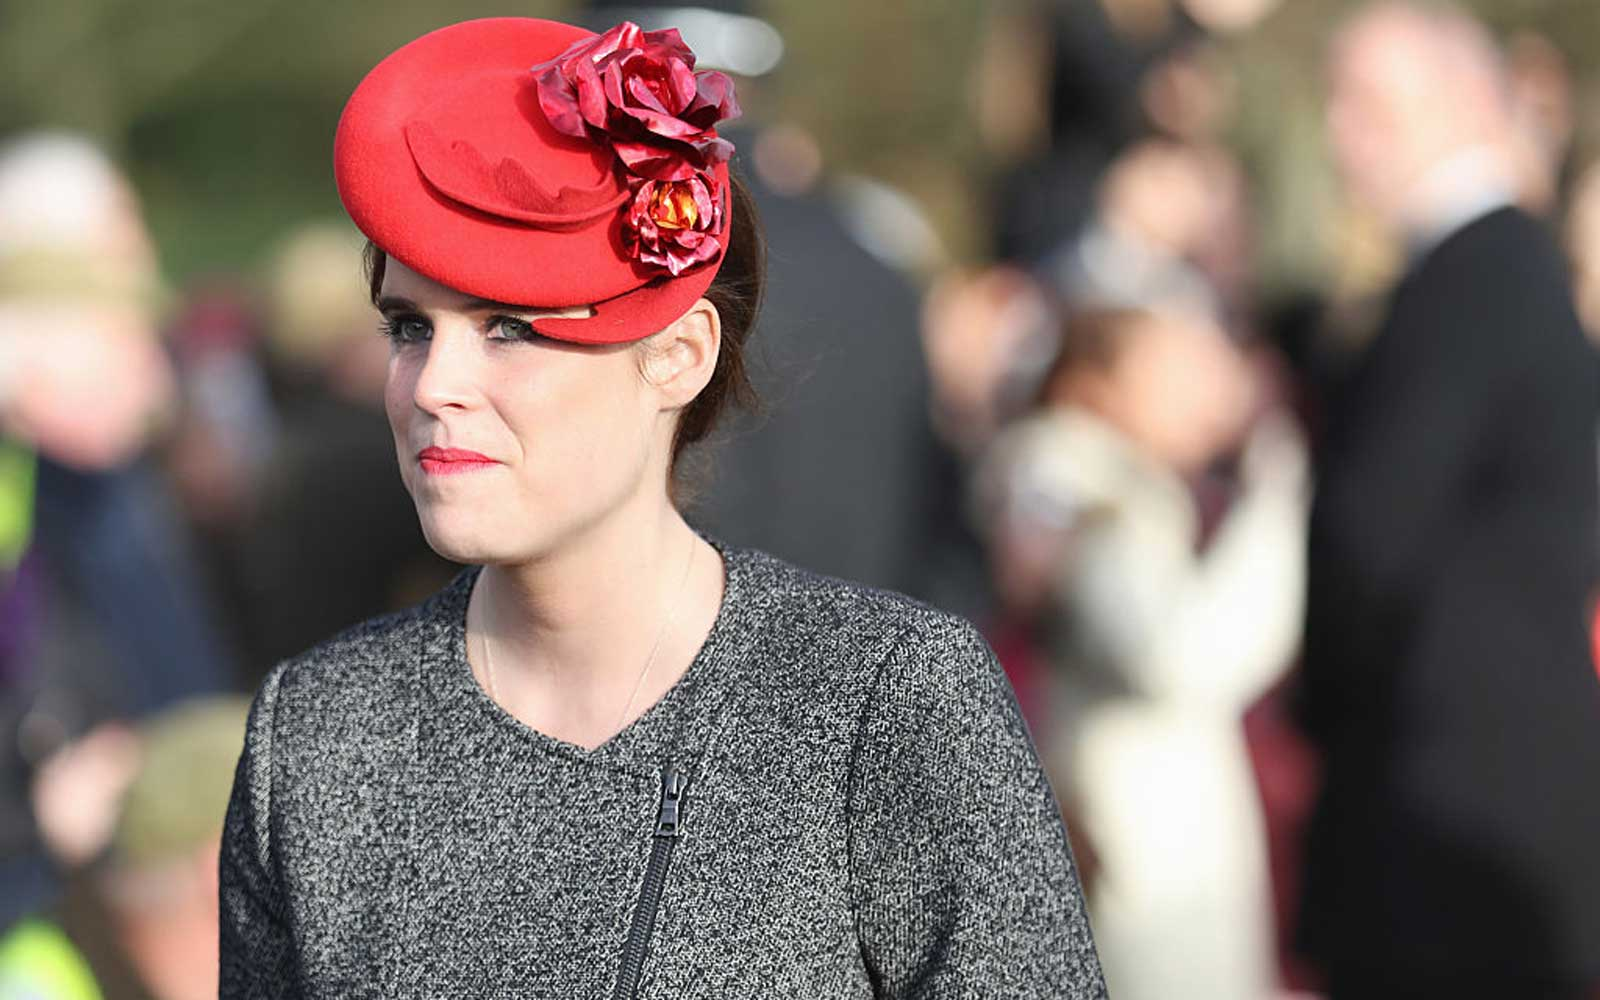 Princess Eugenie 'Got in Trouble' for Posting Instagram Photo From a Private Area of the Palace